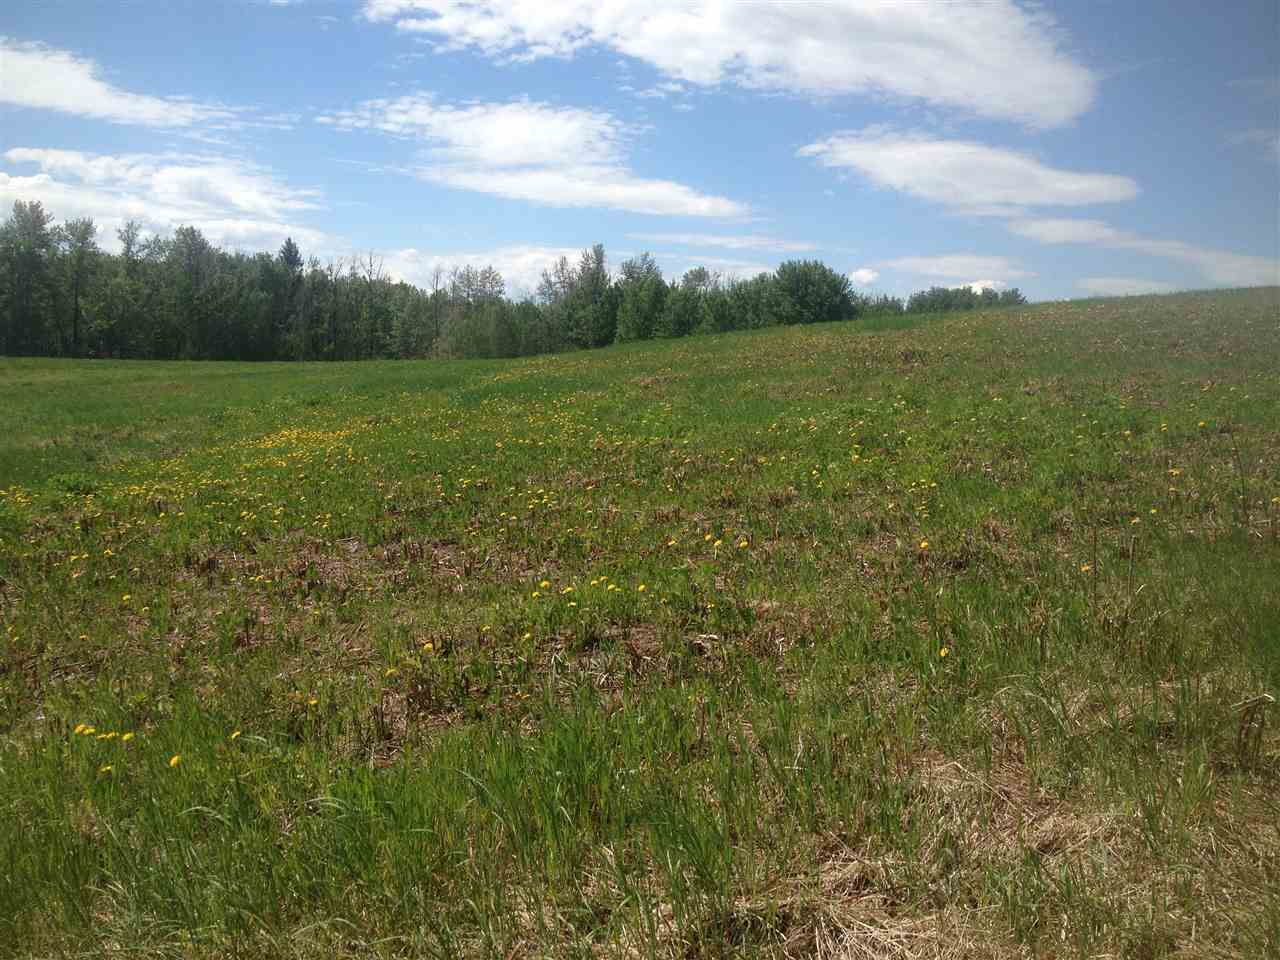 Photo 6: 52502 Range Road 22A: Rural Parkland County Rural Land/Vacant Lot for sale : MLS(r) # E4069524